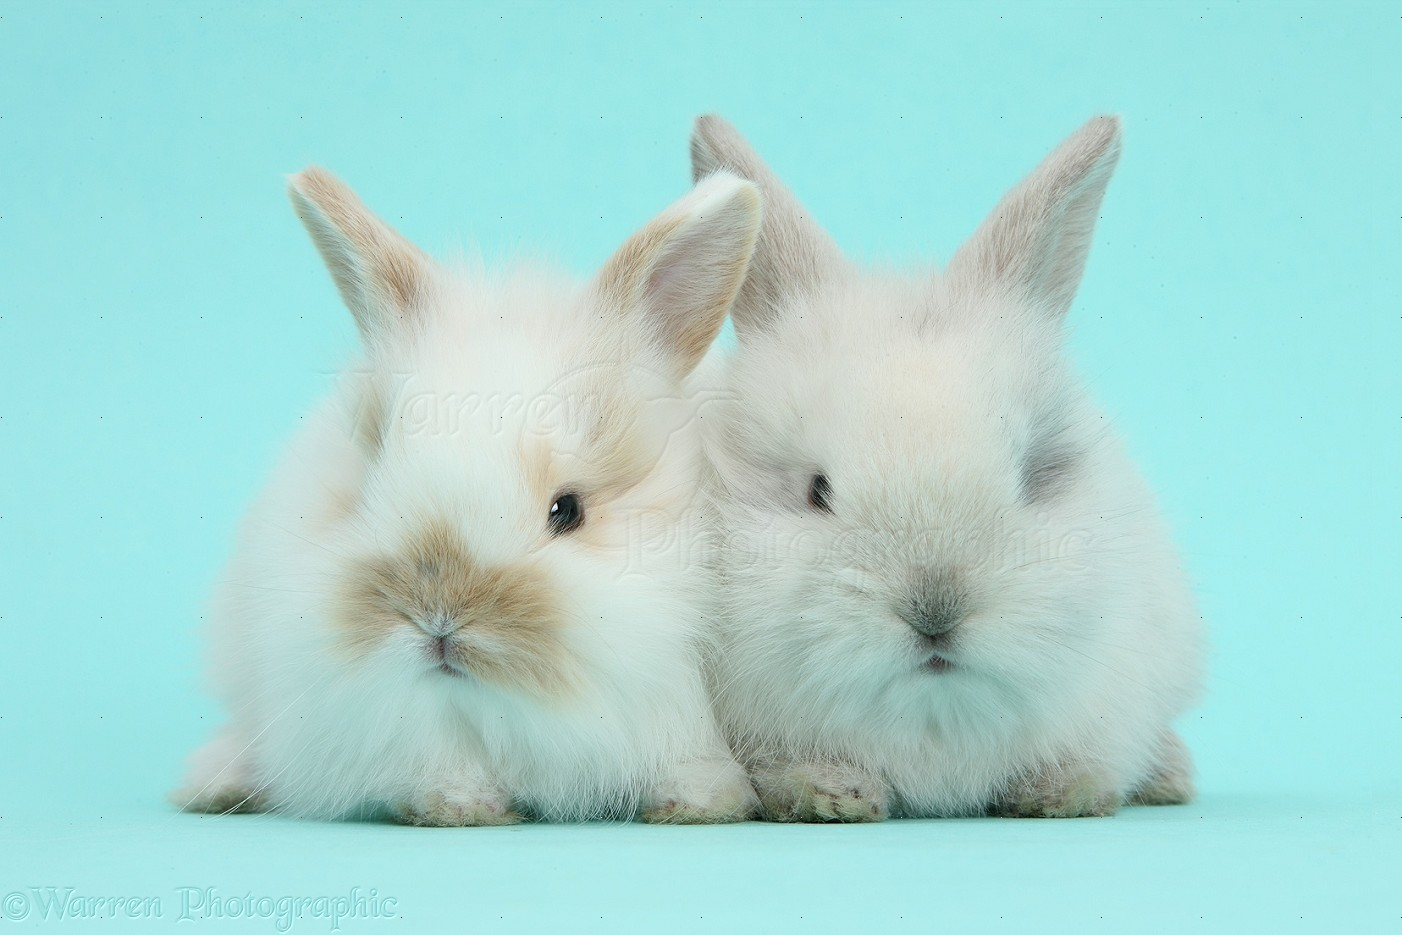 Cute baby bunnies on blue background photo WP40458 - photo#5